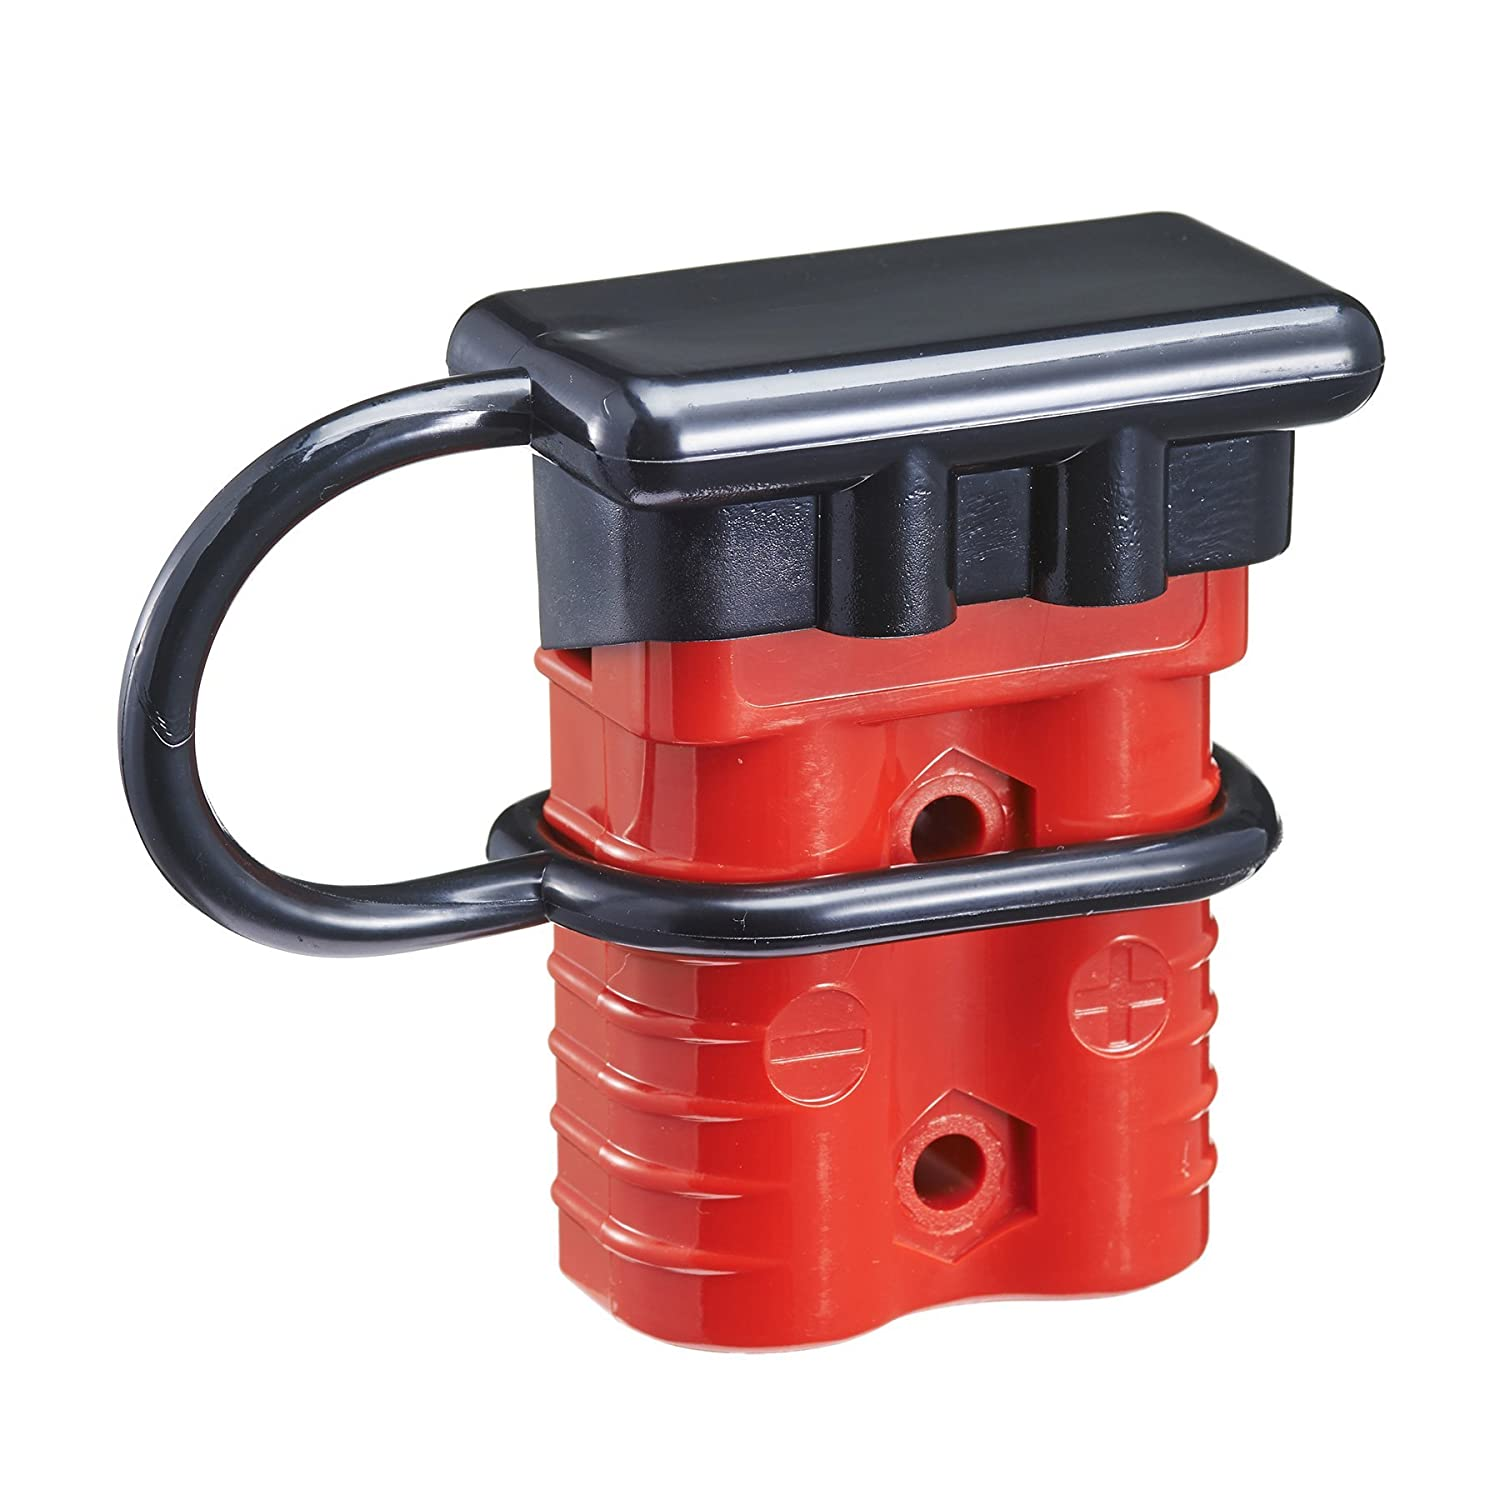 OrionMotorTech 2-4 Gauge 175A Battery Cable Quick Connect// Disconnect Plug Kit Recovery Winch Trailer 12-36V DC